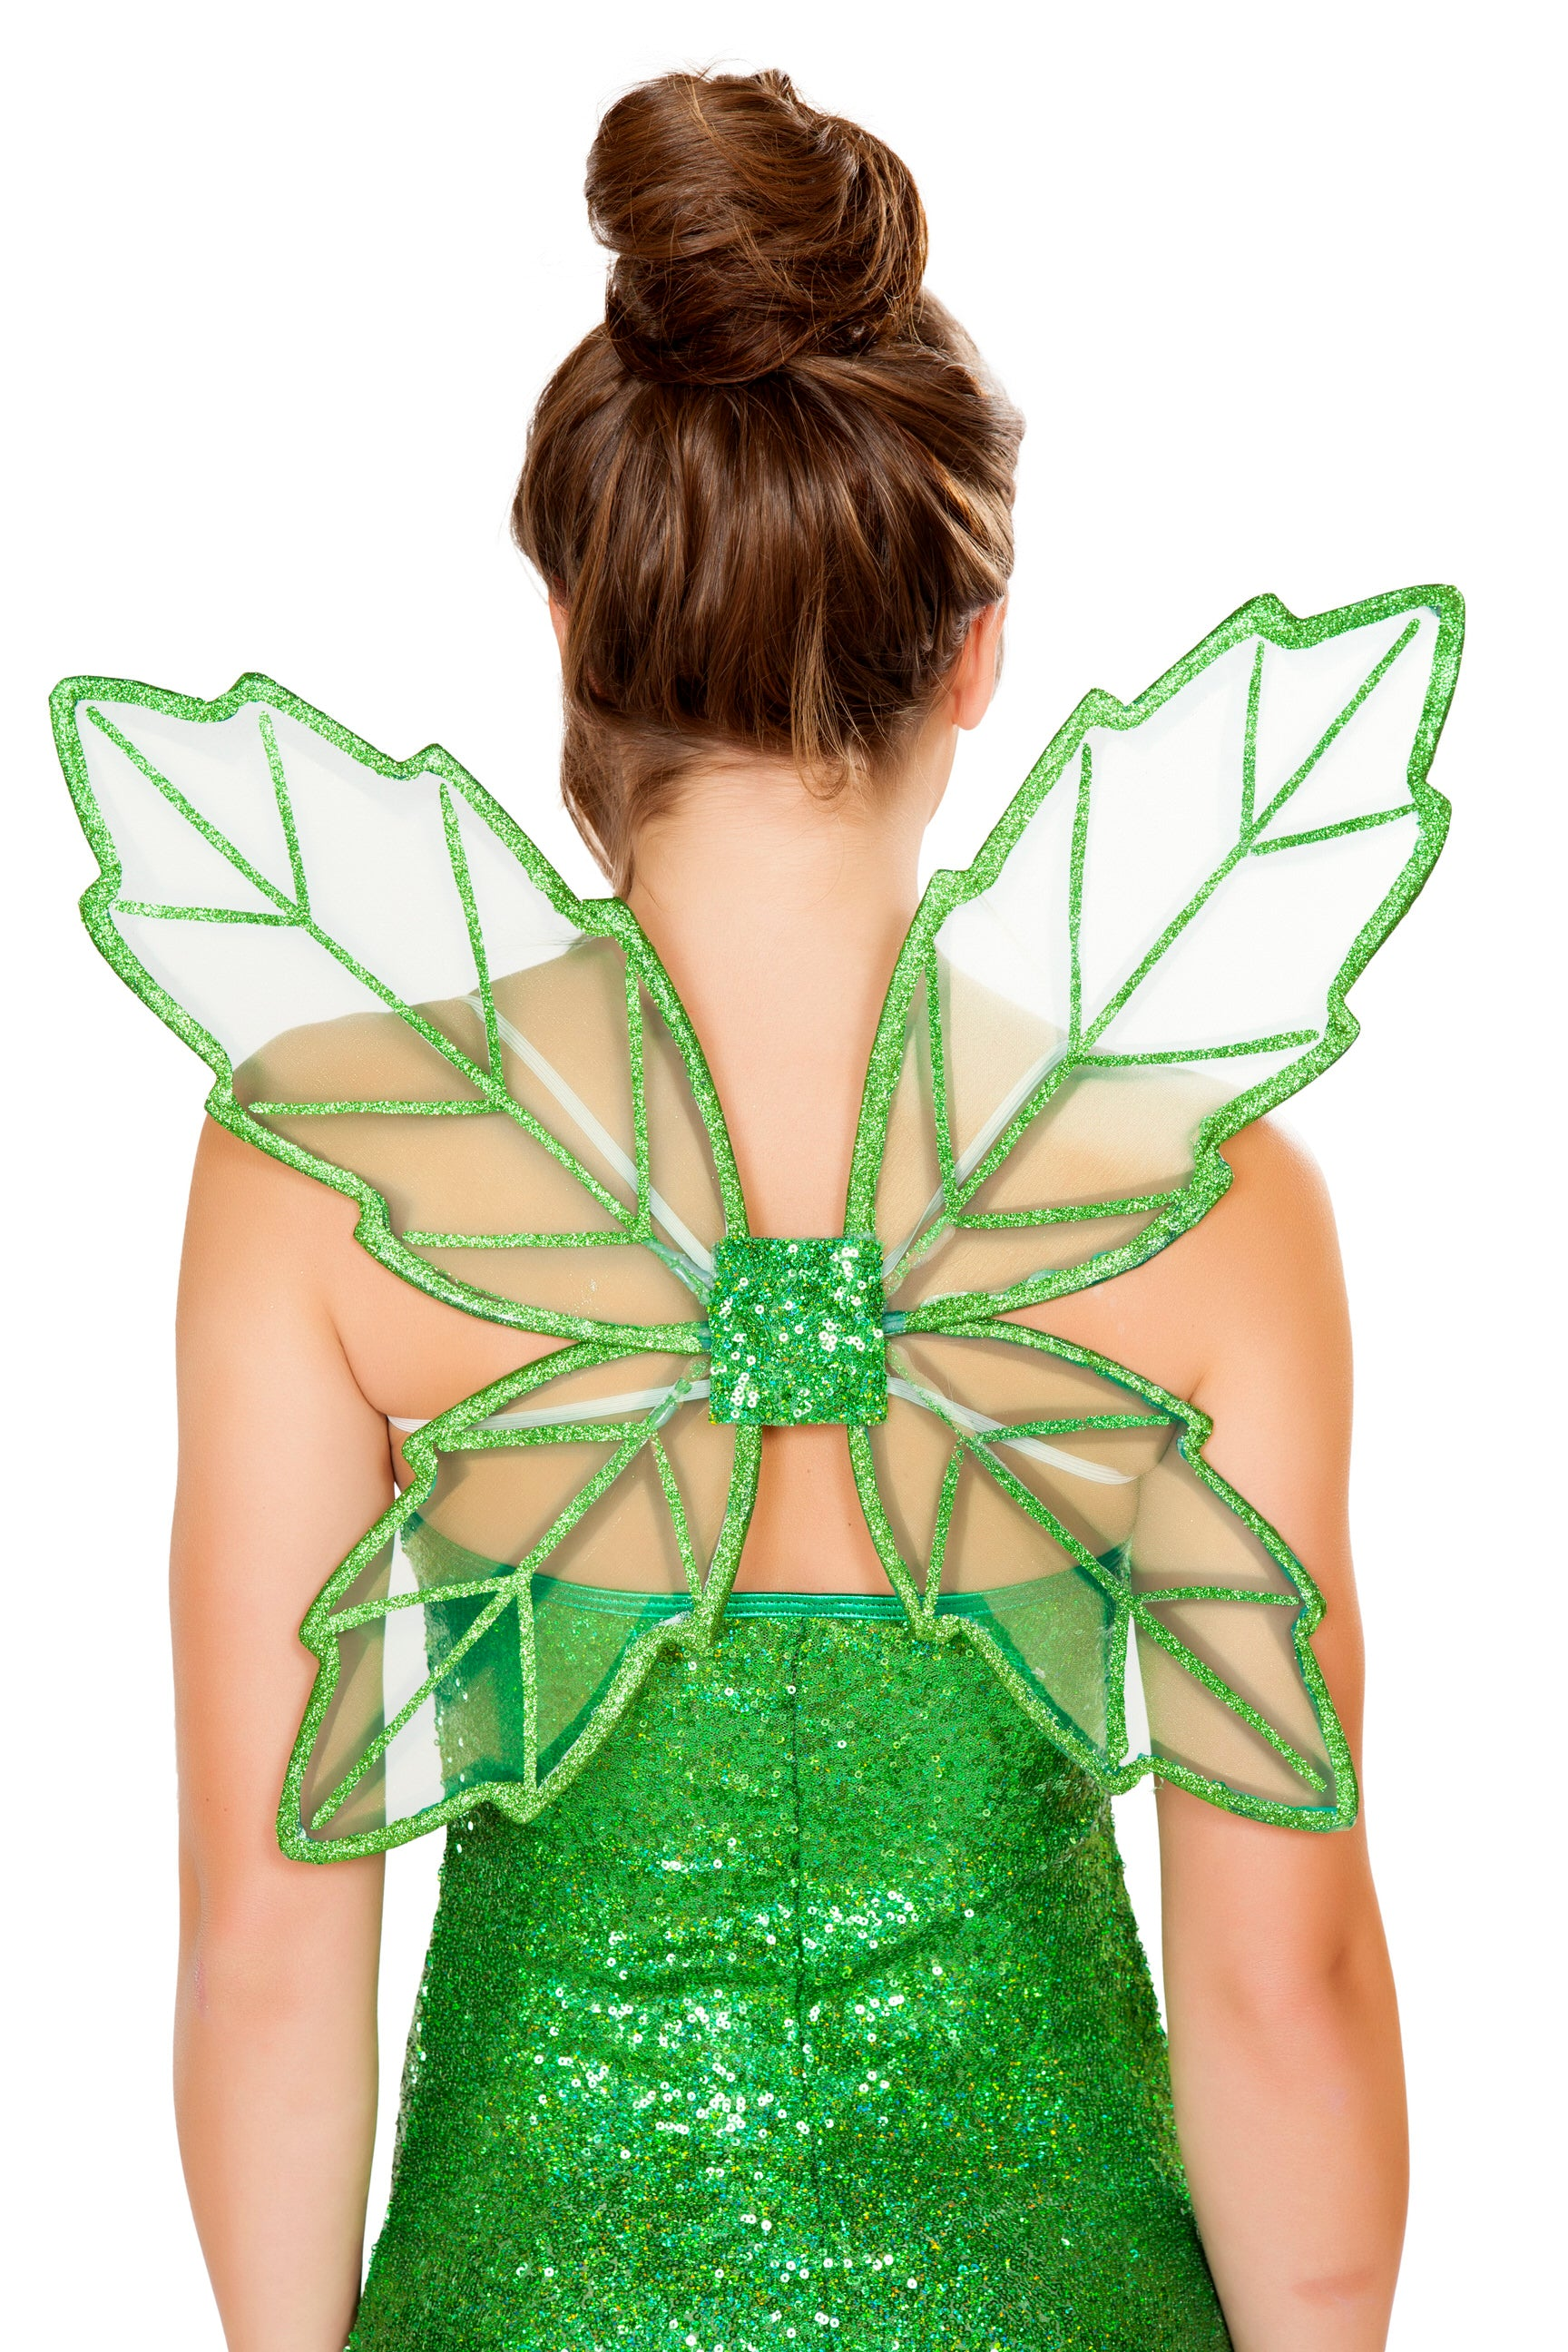 4728 - Fairy Wings ${description} | Roma Costume and Roma Confidential wholesale manufacturer of Women Apparel bulk world wide wholesale and world wide drop ship services for Adult Halloween Costumes, Sexy and Elegant Lingerie, Rave Clothing, Club wear, and Christmas Costumes. Accessories, Roma Costume, Inc., Roma Costume, Roma Confidential, Wholesale clothing, drop ship, drop ship service, Wholesale Lingerie, Wholesale Adult Halloween Costumes, Rave Clothing, EDM Clothing, Festival Wear, Christmas Costumes, Clubwear, Club wear.